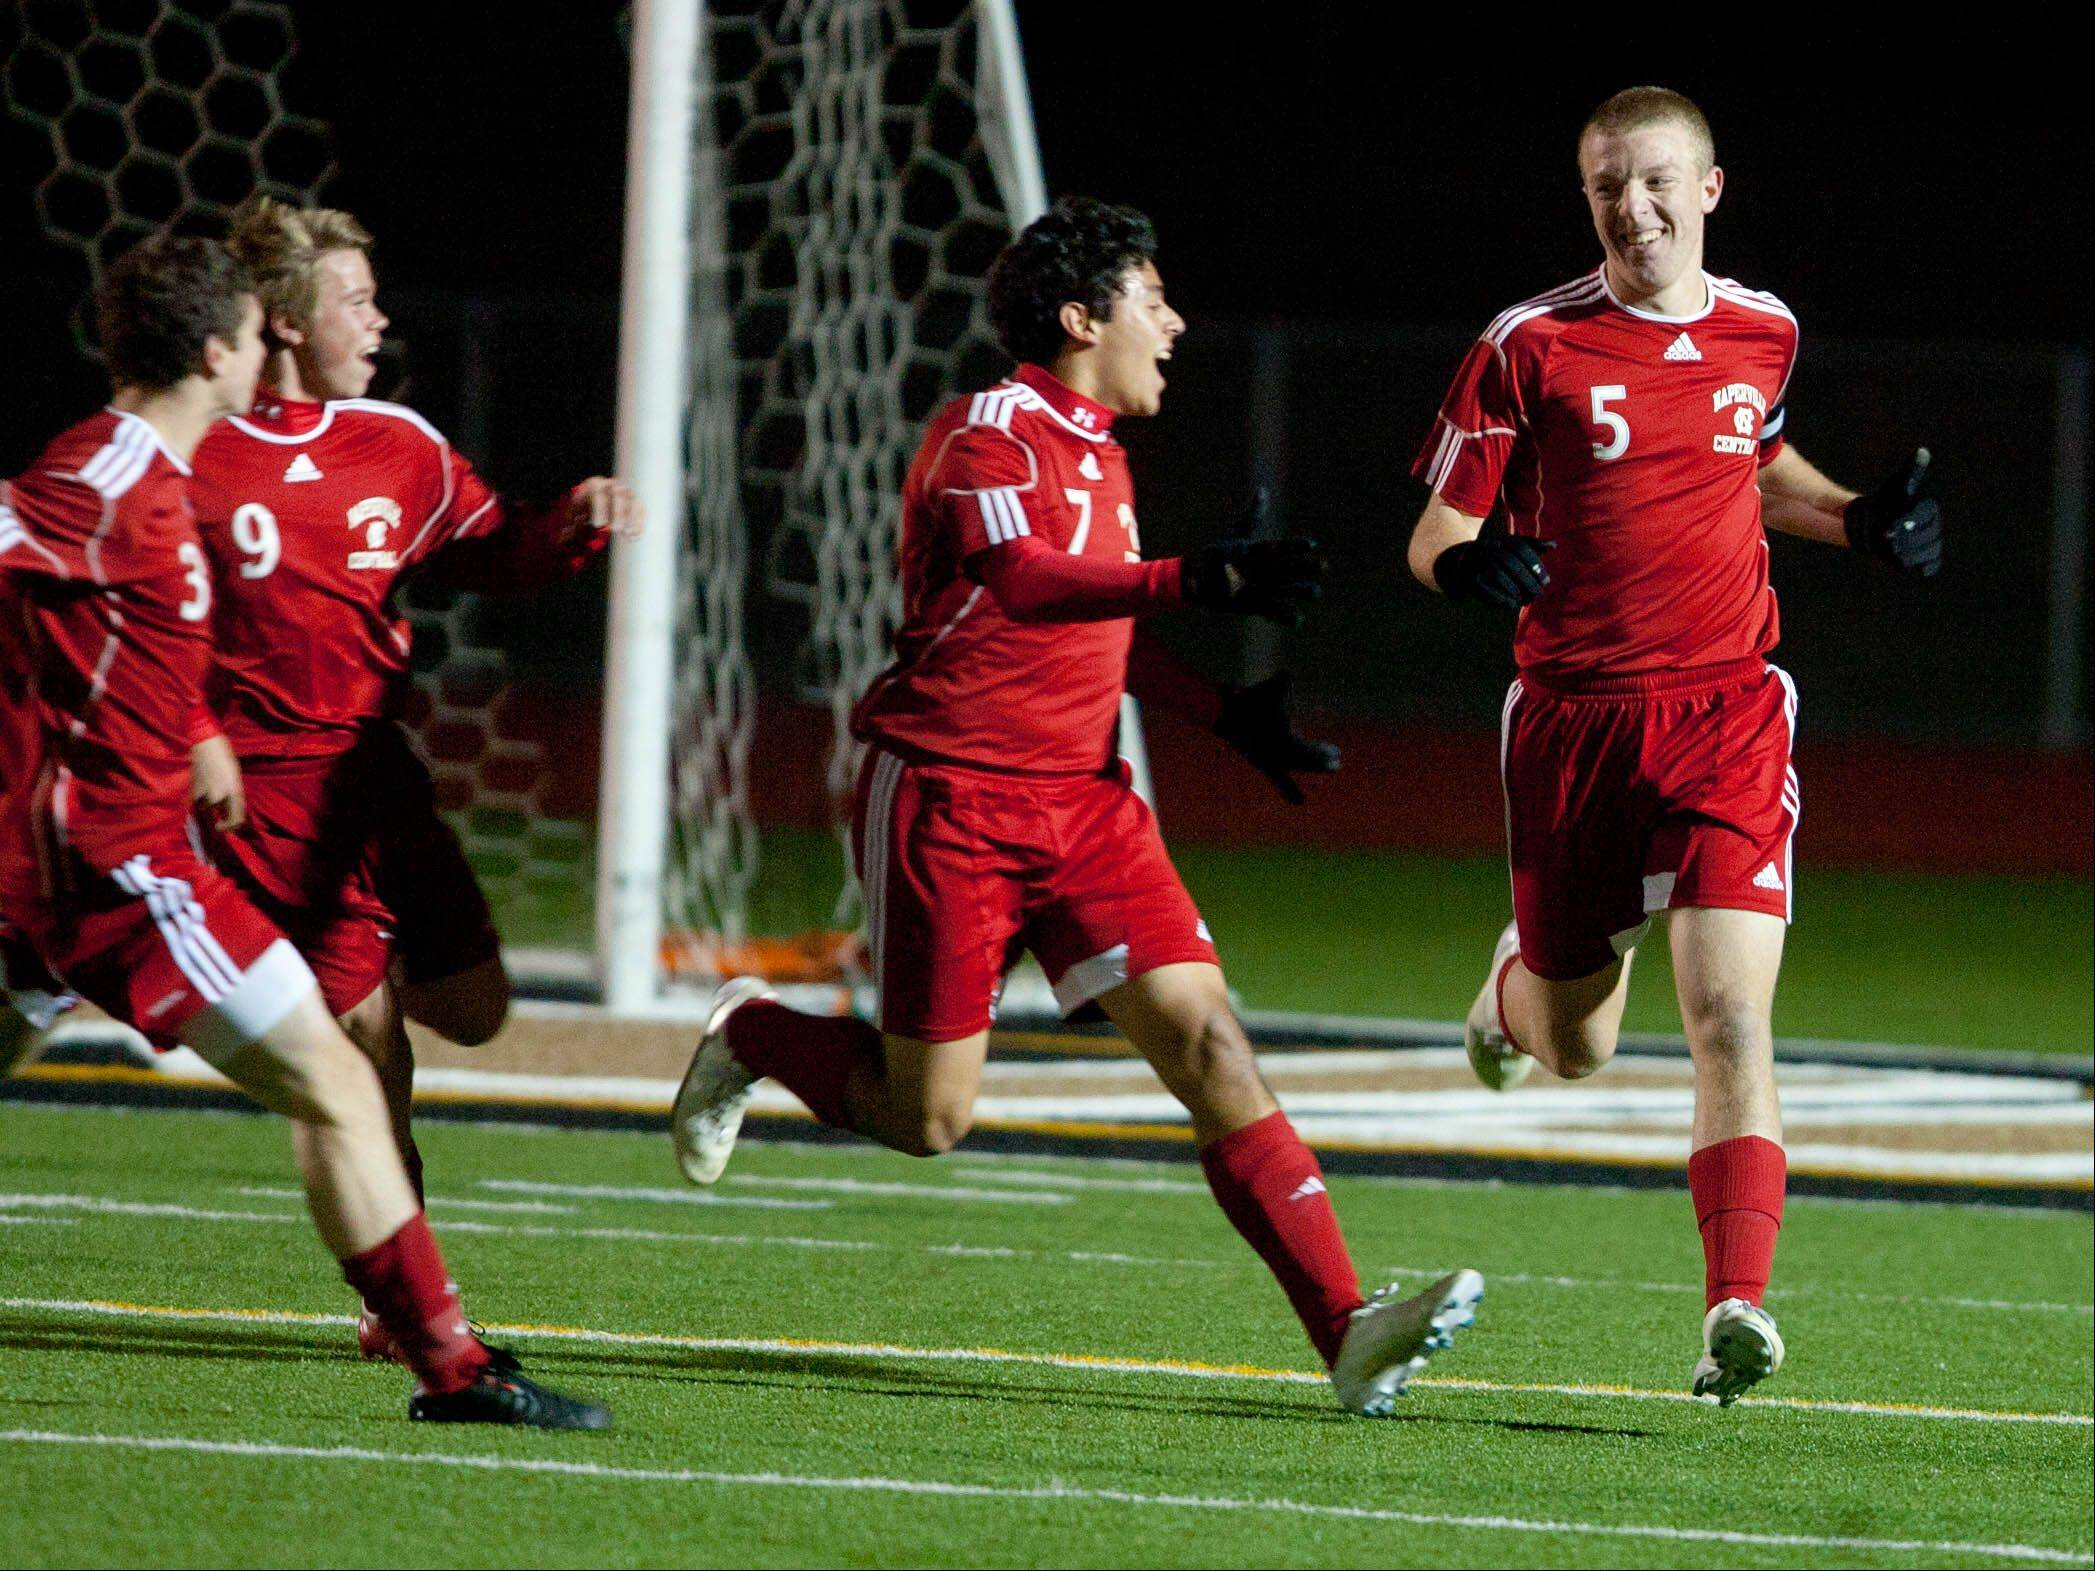 Naperville Central�s Pat Flynn, (5), is congratulated by teammates Jay Tegge (3), Jordi Heeneman (9), and Sam Reskala (7), after scoring the first goal against Stevenson, during the boys 3A state semifinal soccer match held at Lincoln-Way North High School.